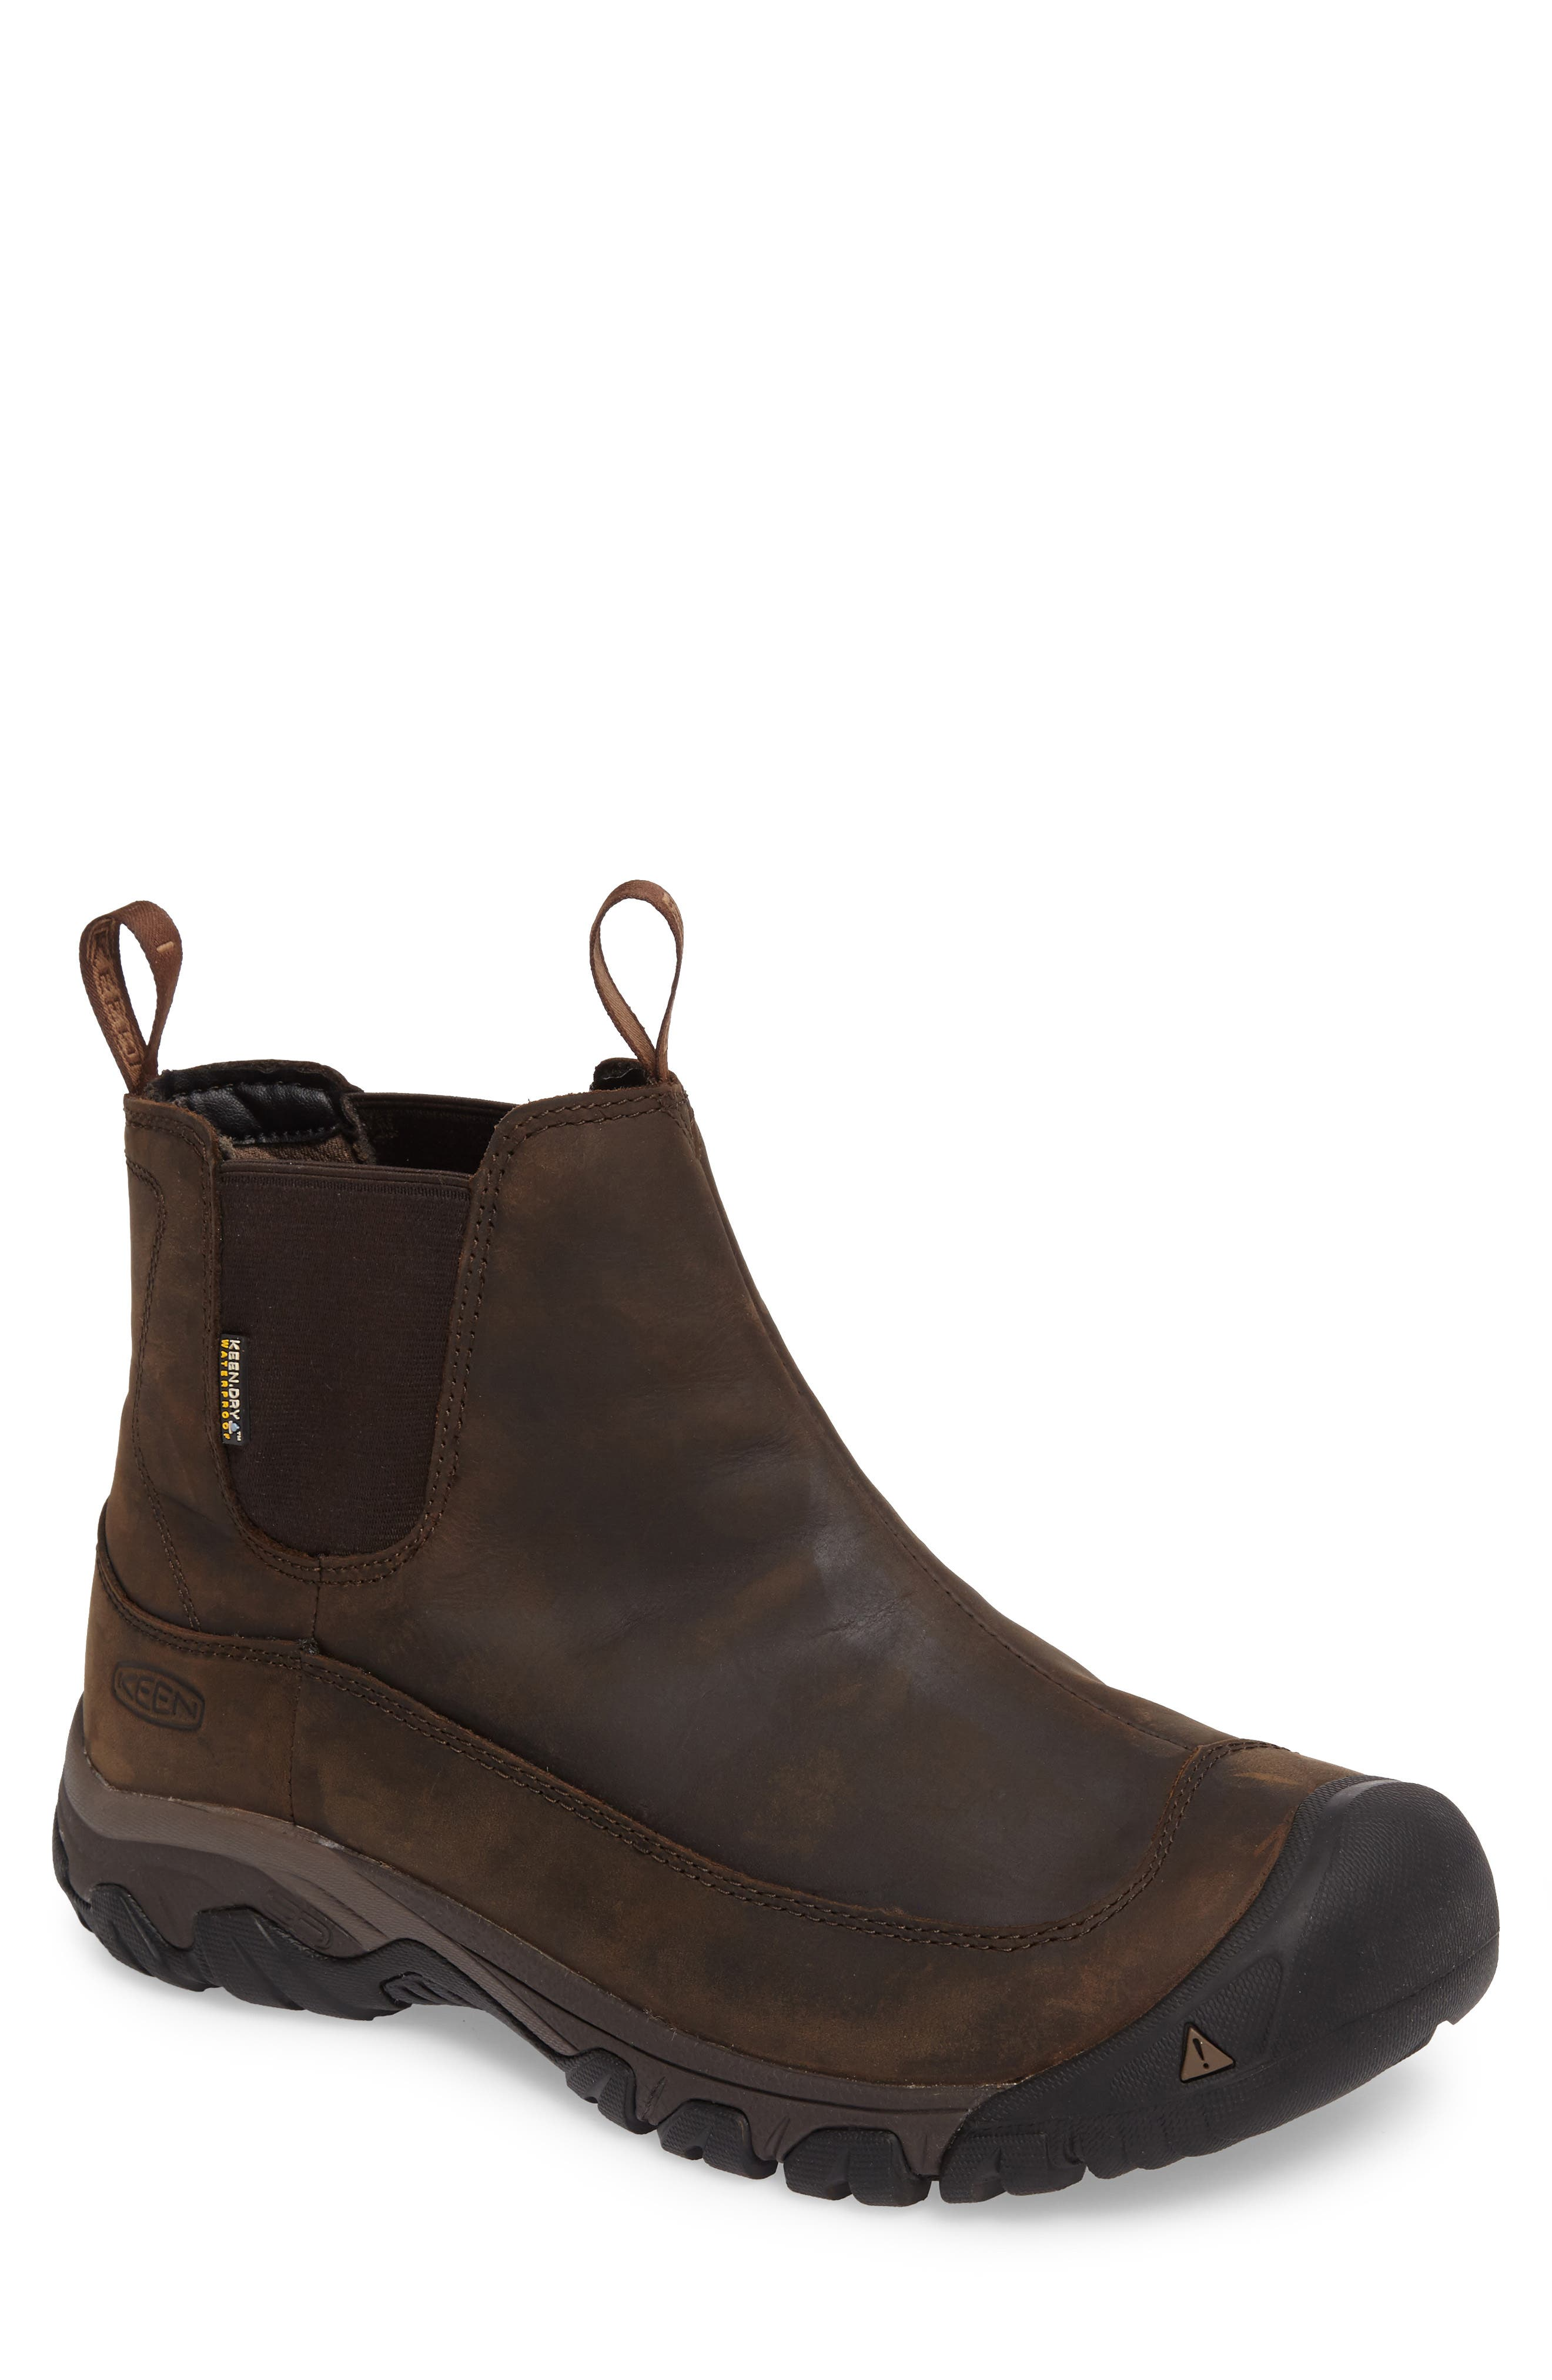 Alternate Image 1 Selected - Keen Anchorage II Waterproof Chelsea Boot (Men)